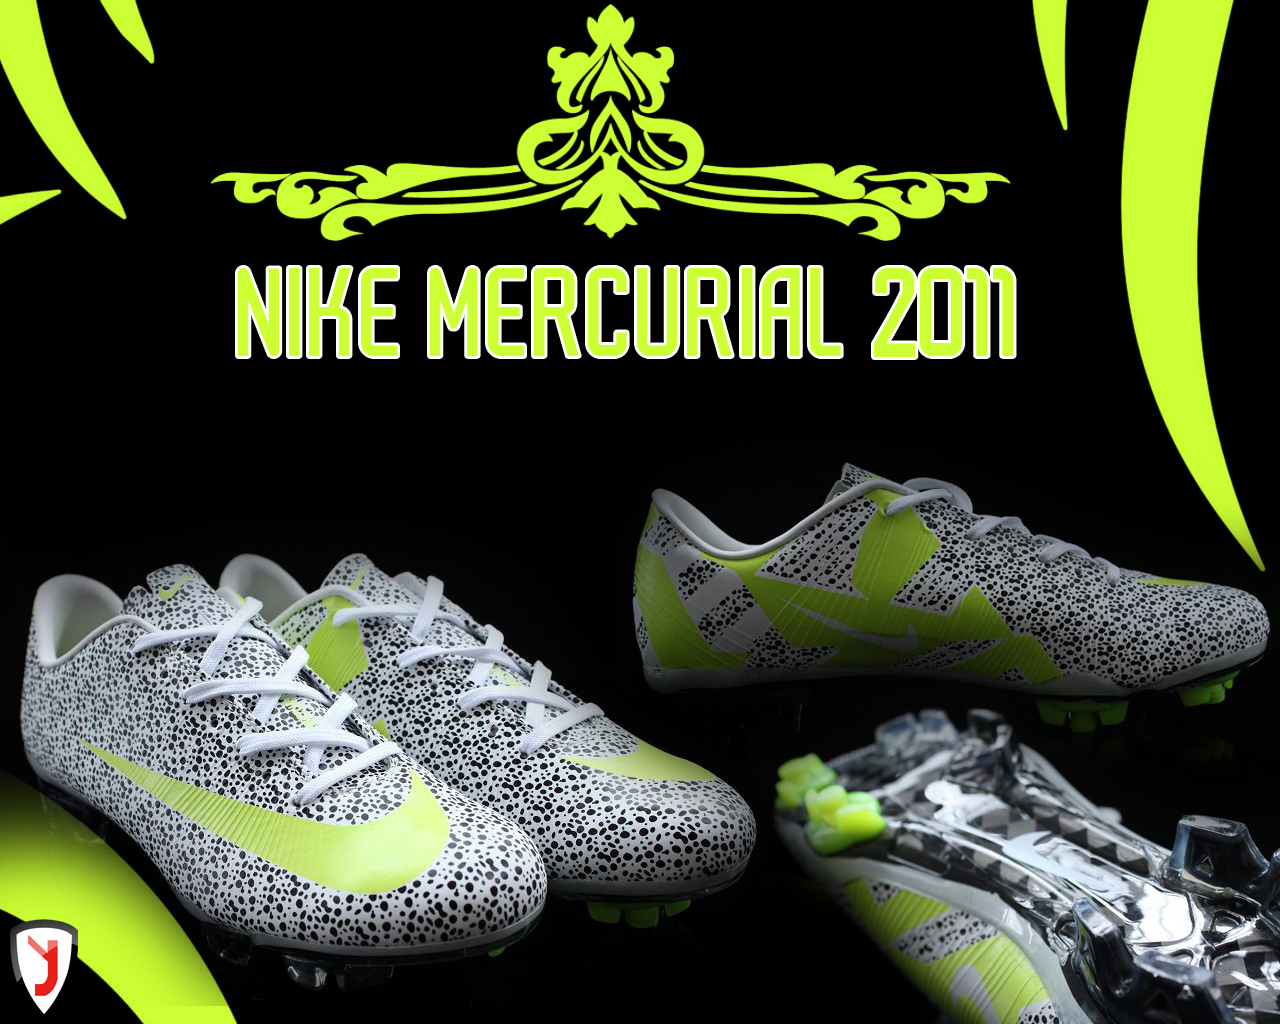 comment on this picture 2012 review sepatu bola sepatu bola